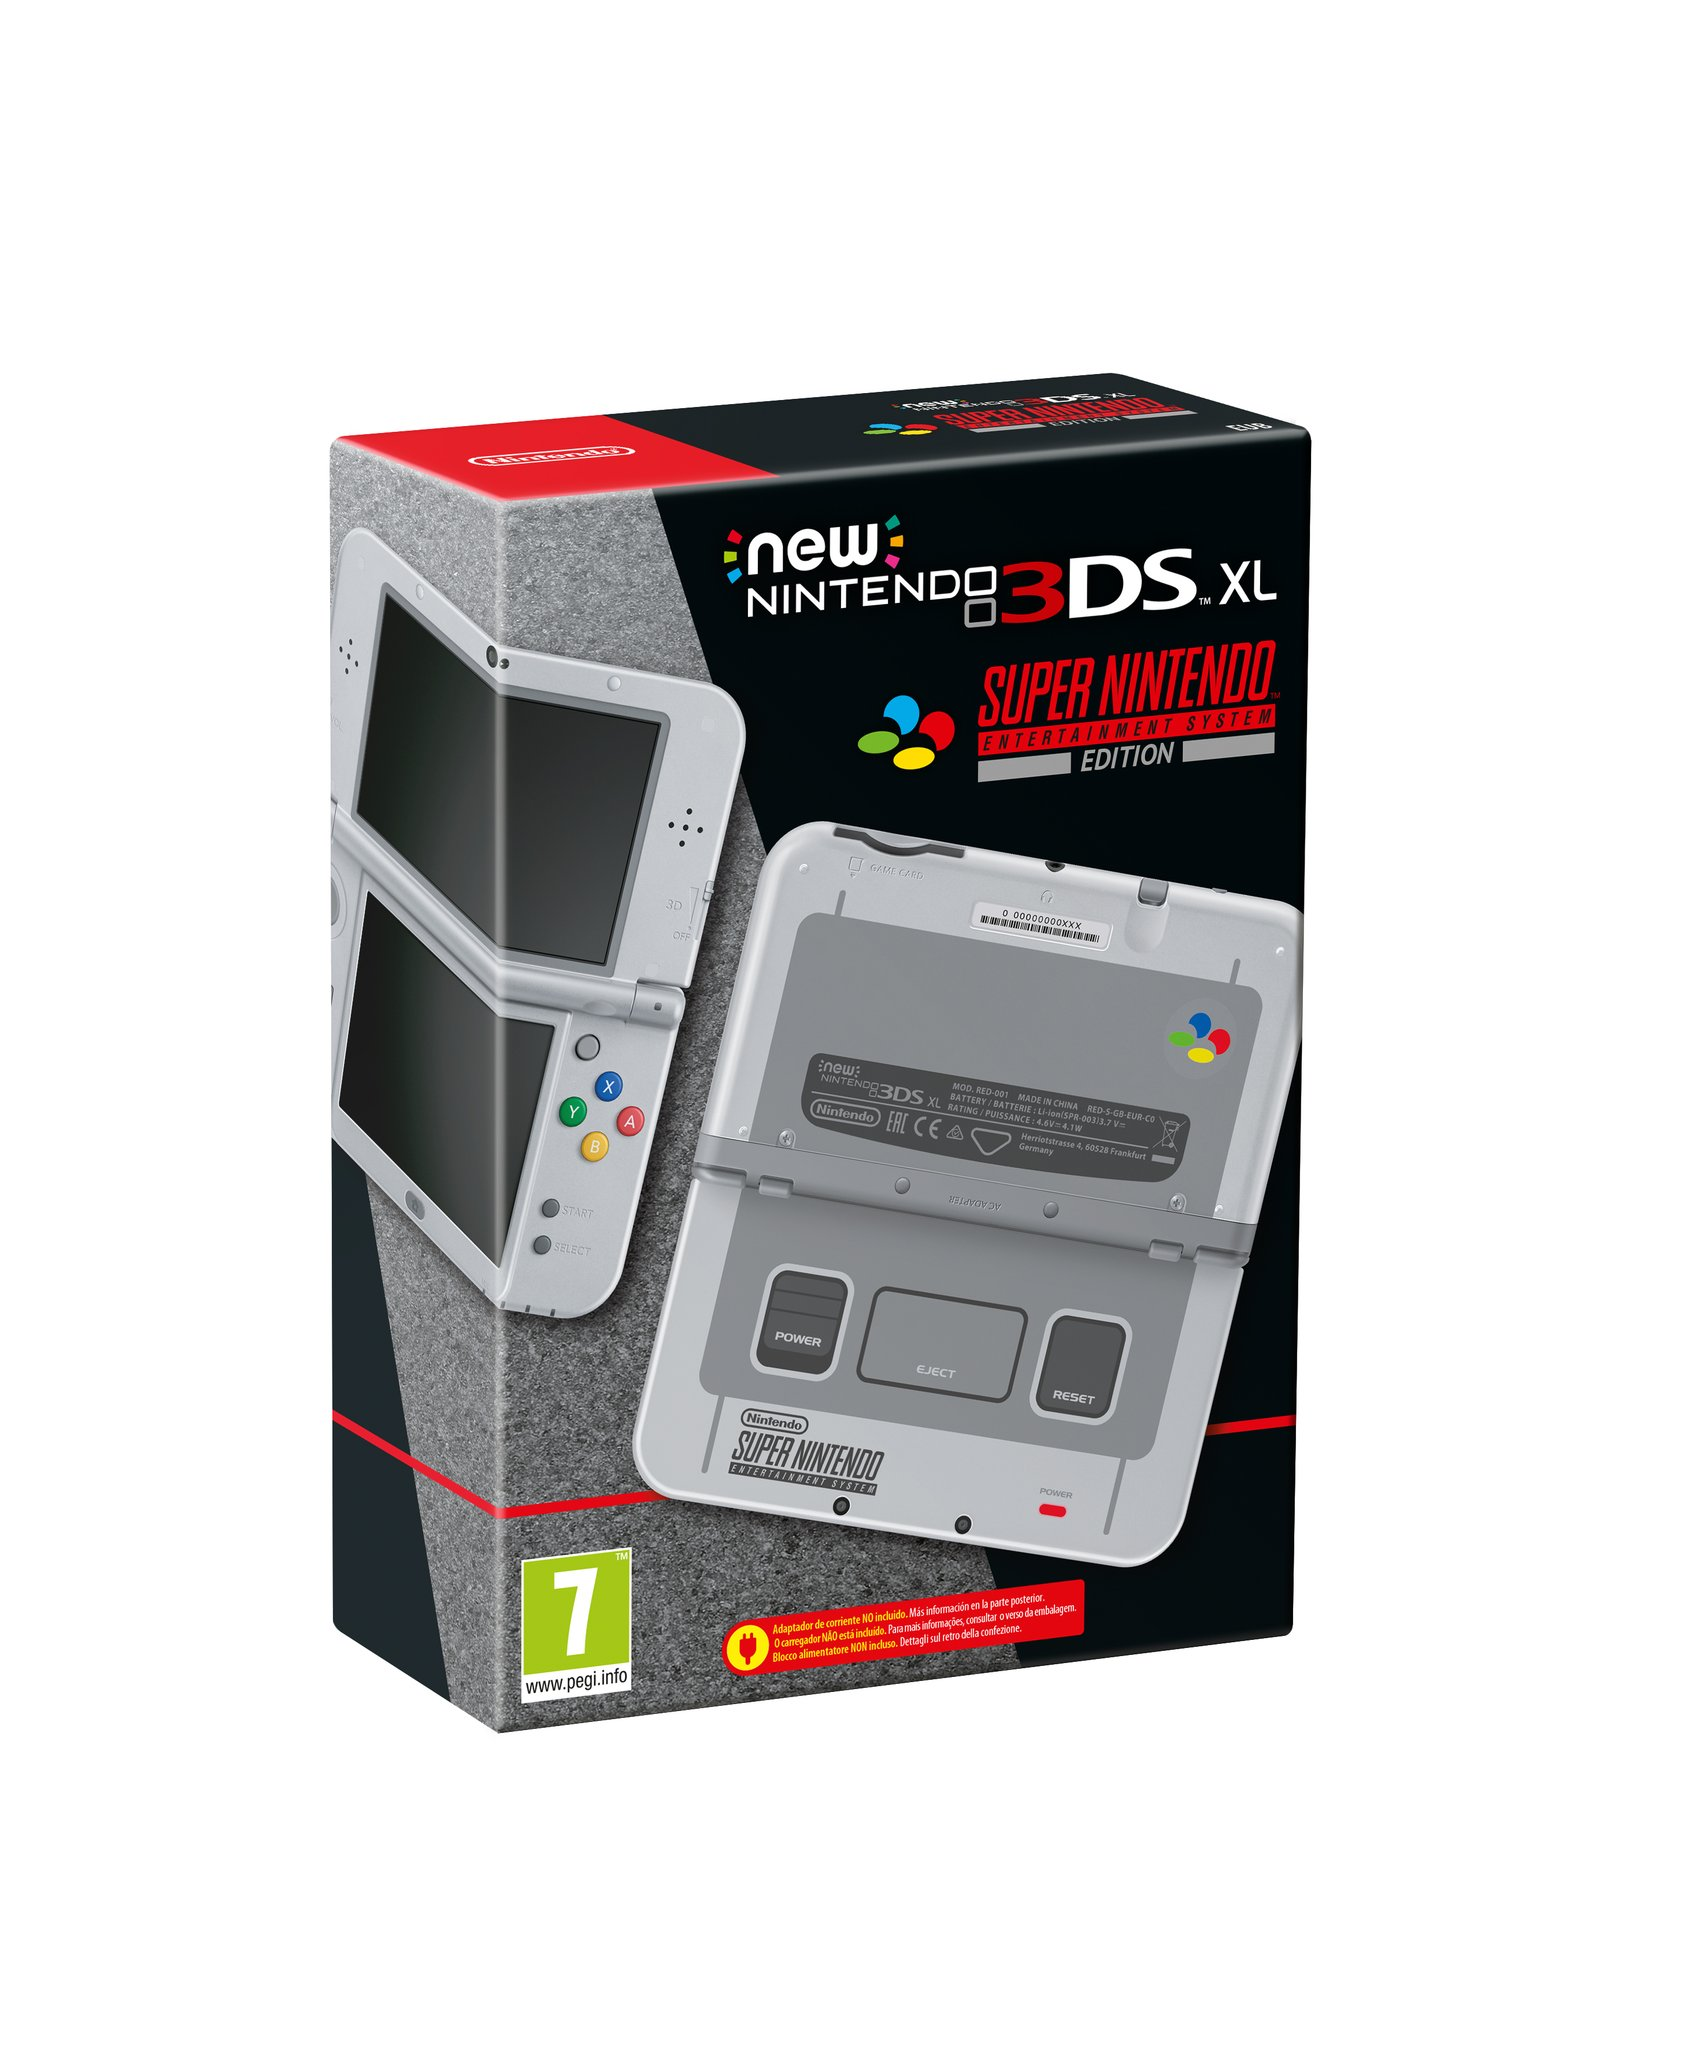 New Nintendo 3DS XL Super Nintendo Edition é anunciado na Europa